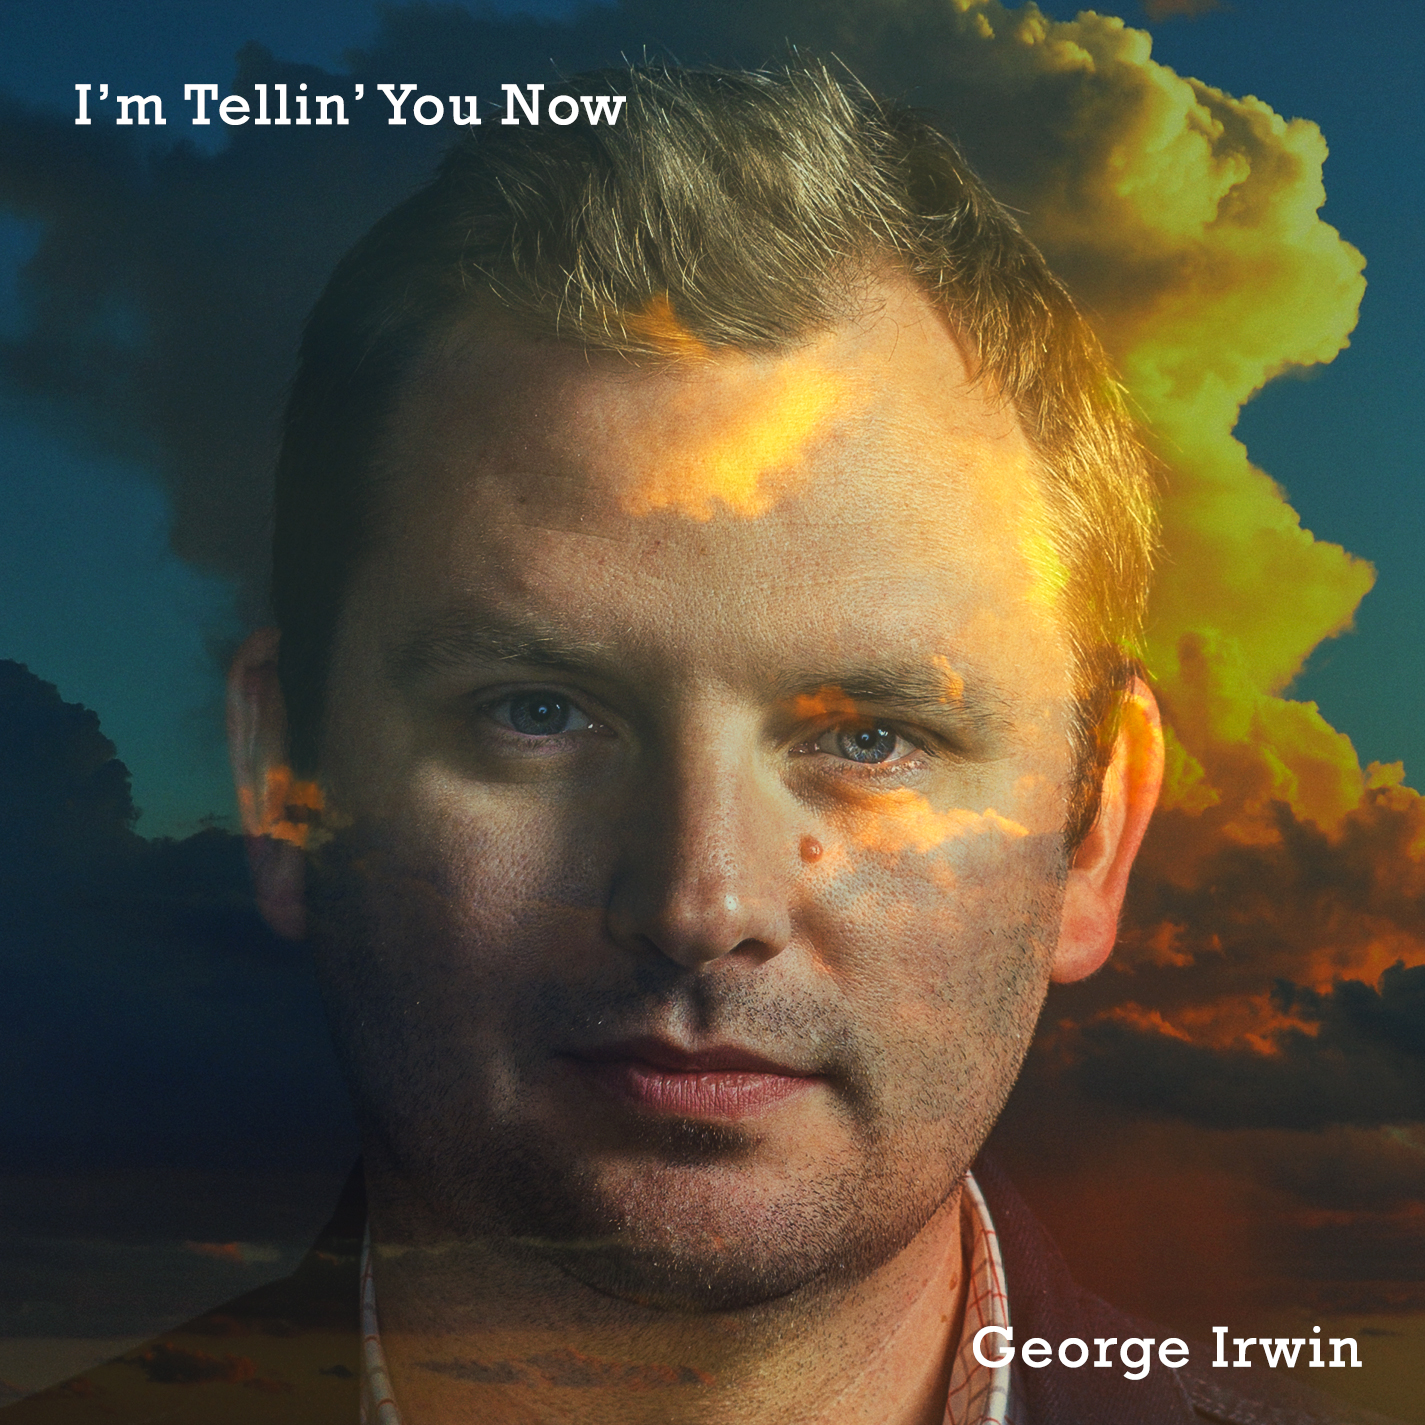 George Irwin - I'm Tellin' You Now